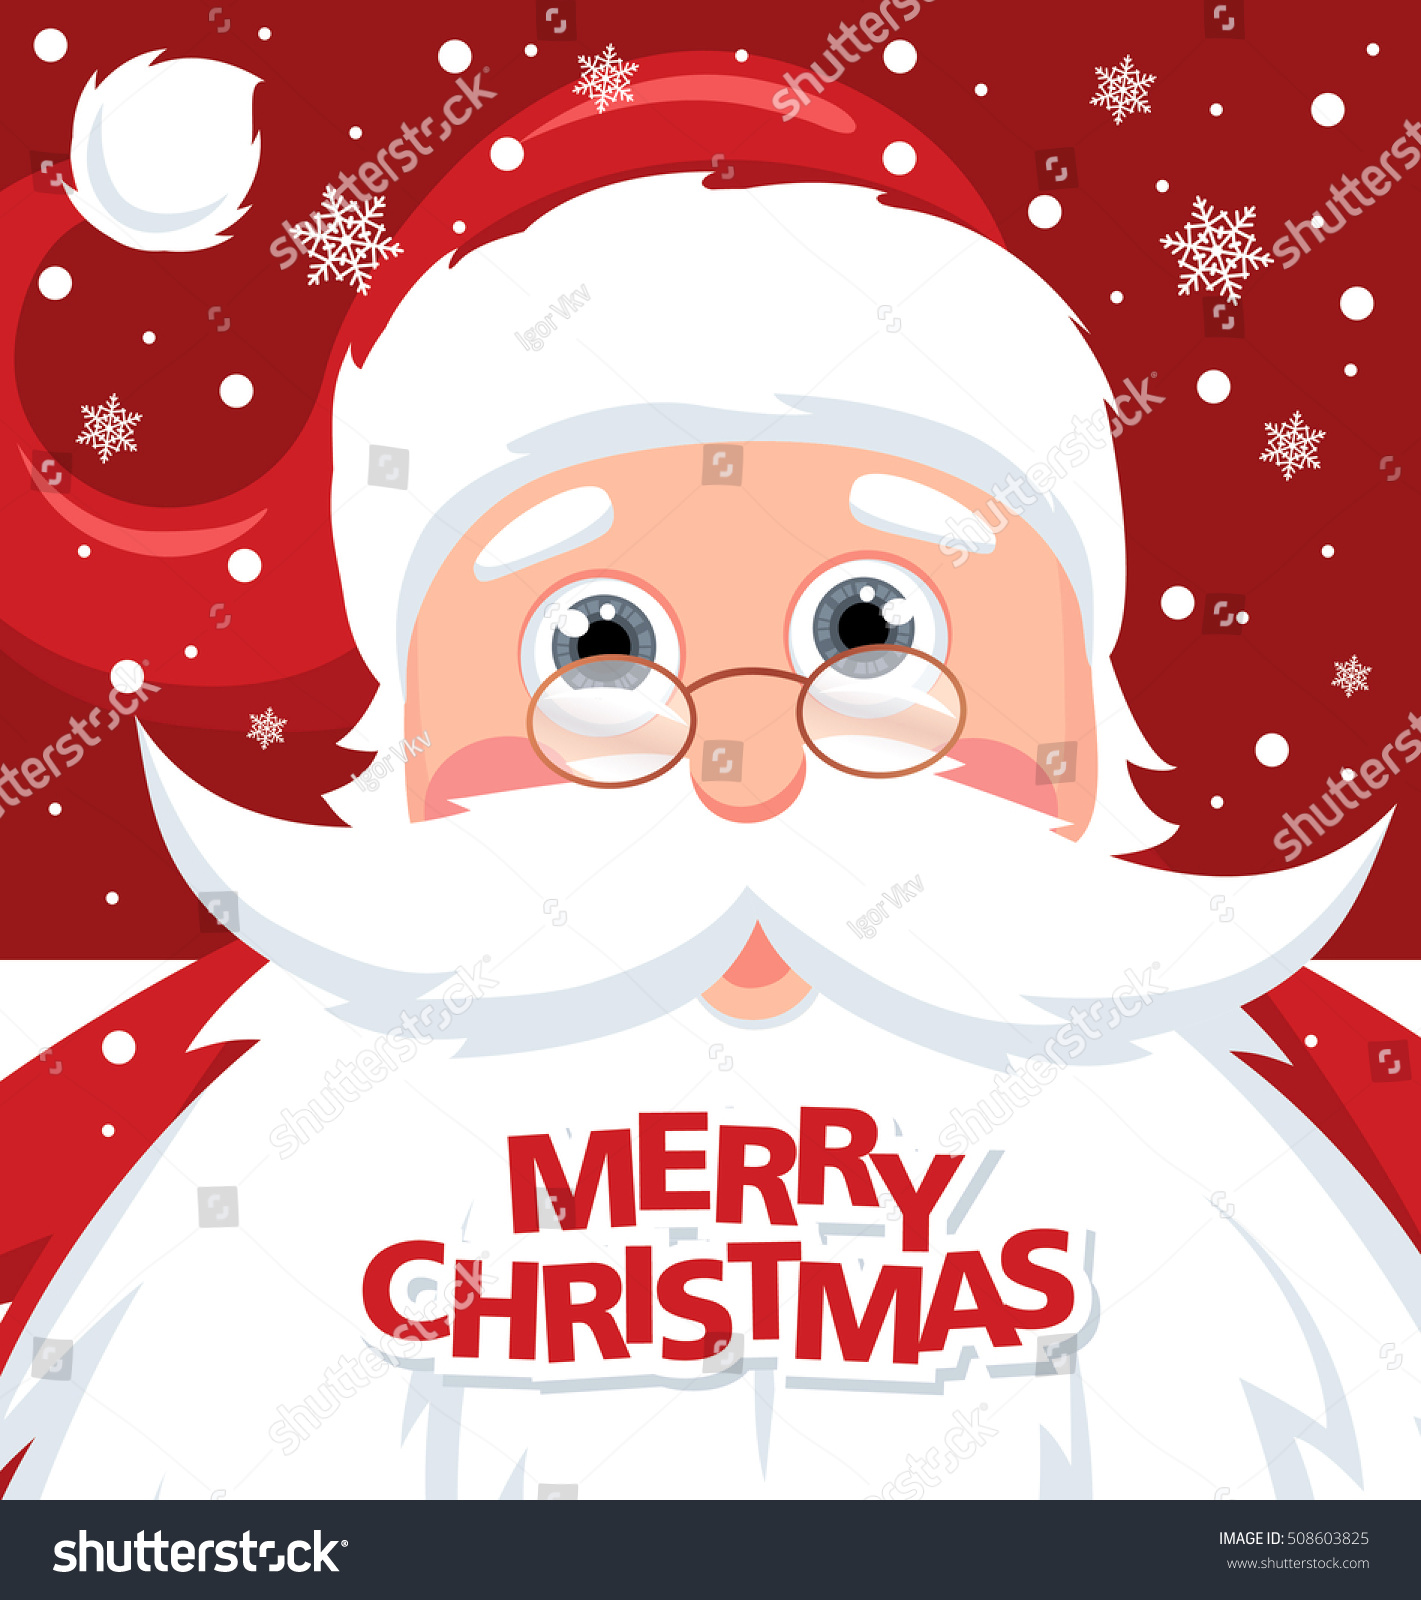 Santa Claus Merry Christmas Lettering Holiday Stock Vector (Royalty ...